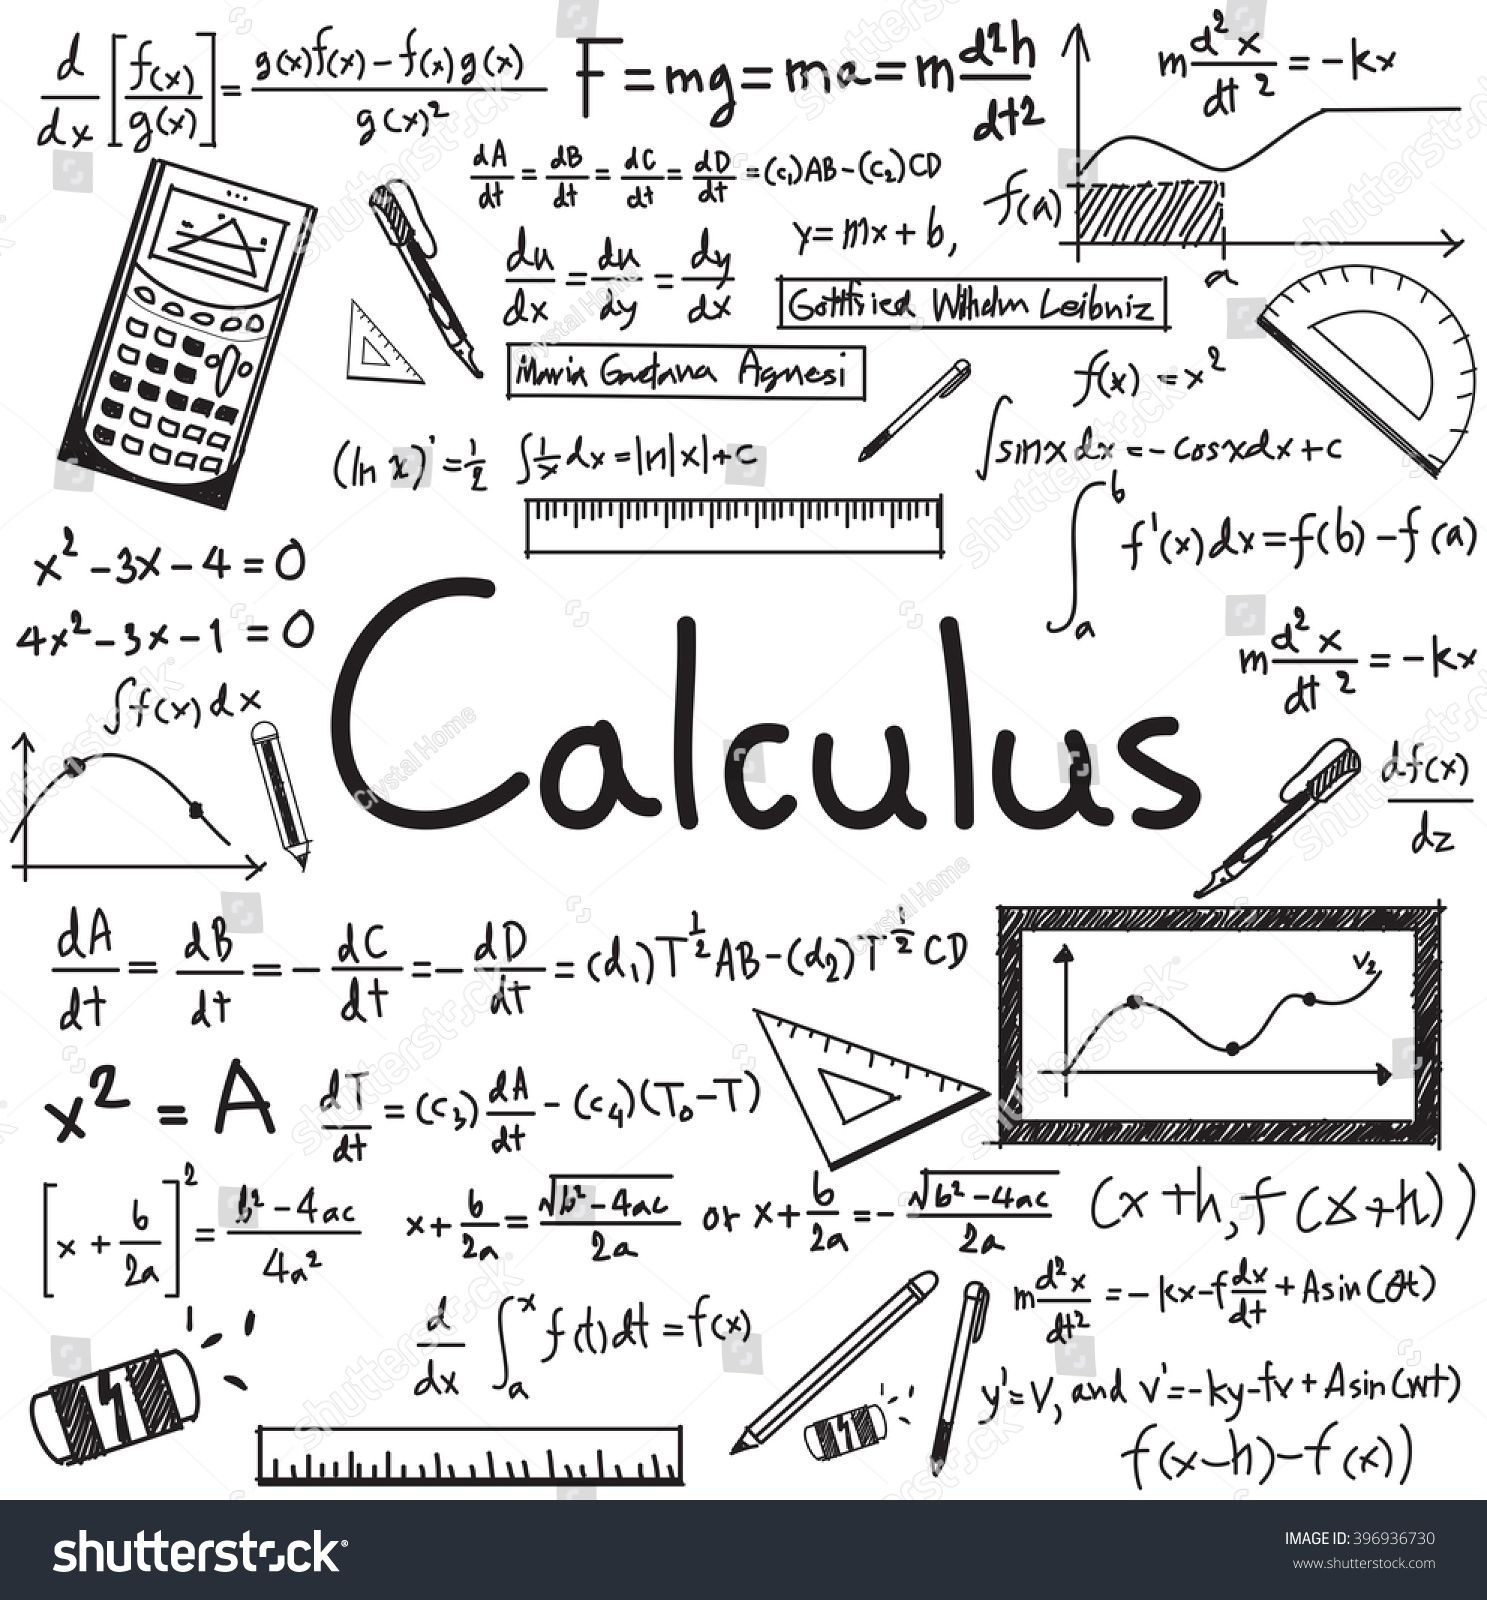 Calculus a branch of mathematics in which calculations are made calculus a branch of mathematics in which calculations are made using special symbolic notations buycottarizona Images